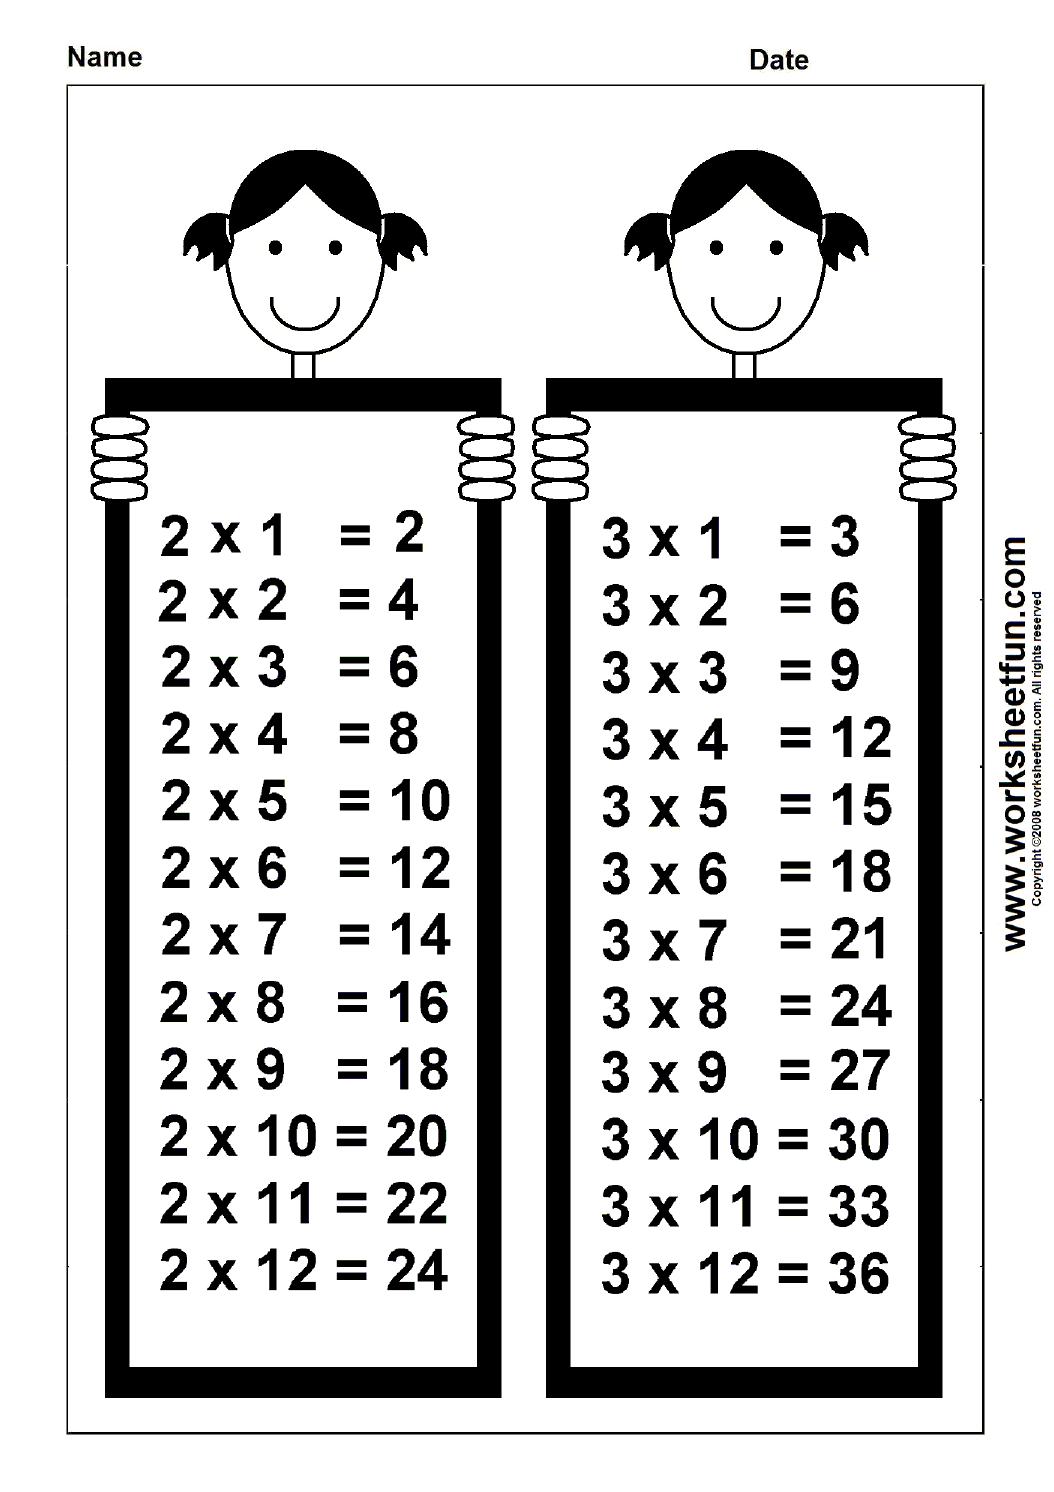 Times Table Chart 2 Amp 3 Free Printable Worksheets Worksheetfun